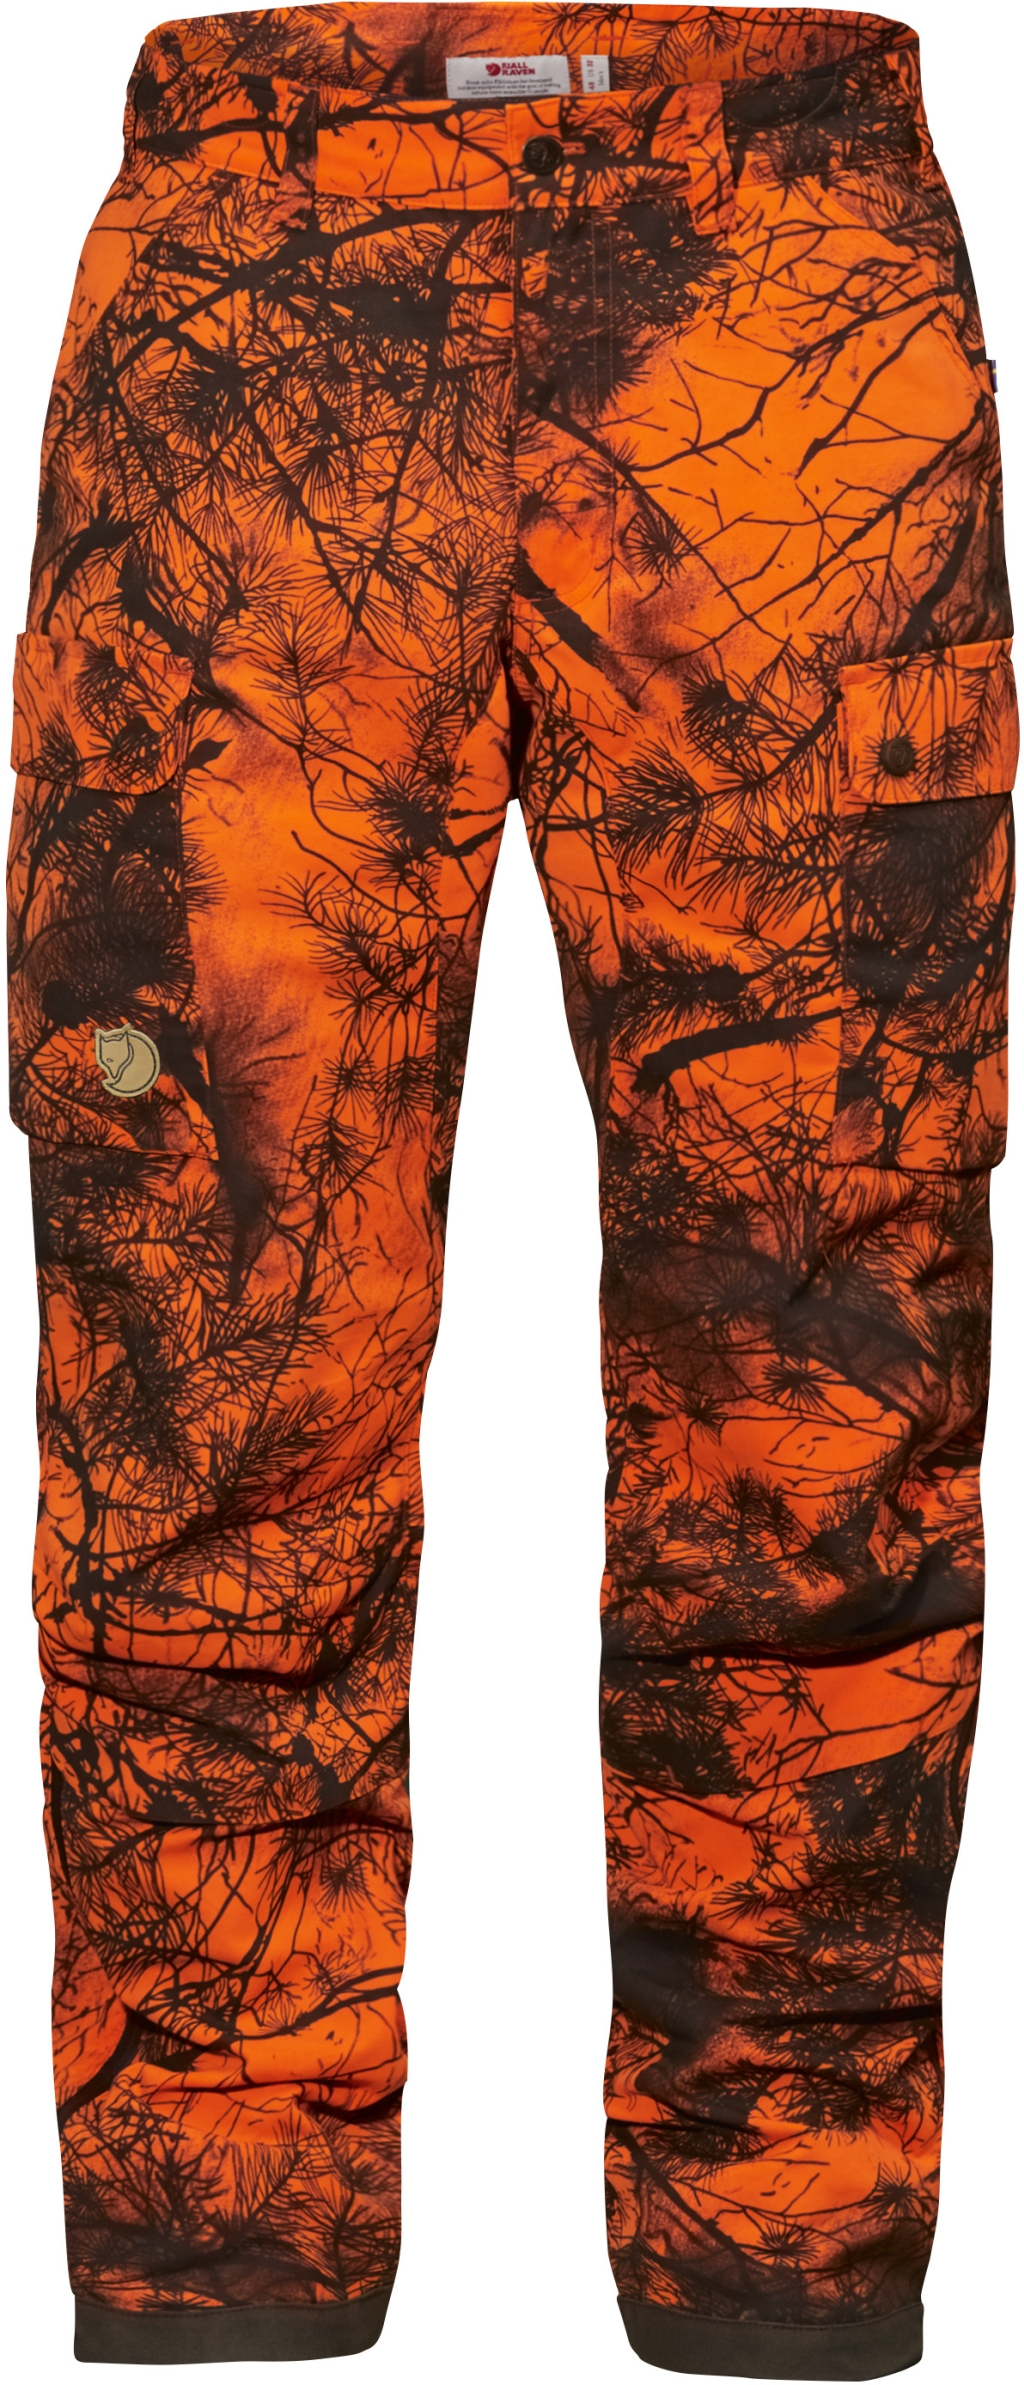 FjallRaven Brenner Pro Winter Trousers Camo W Orange Camo-30